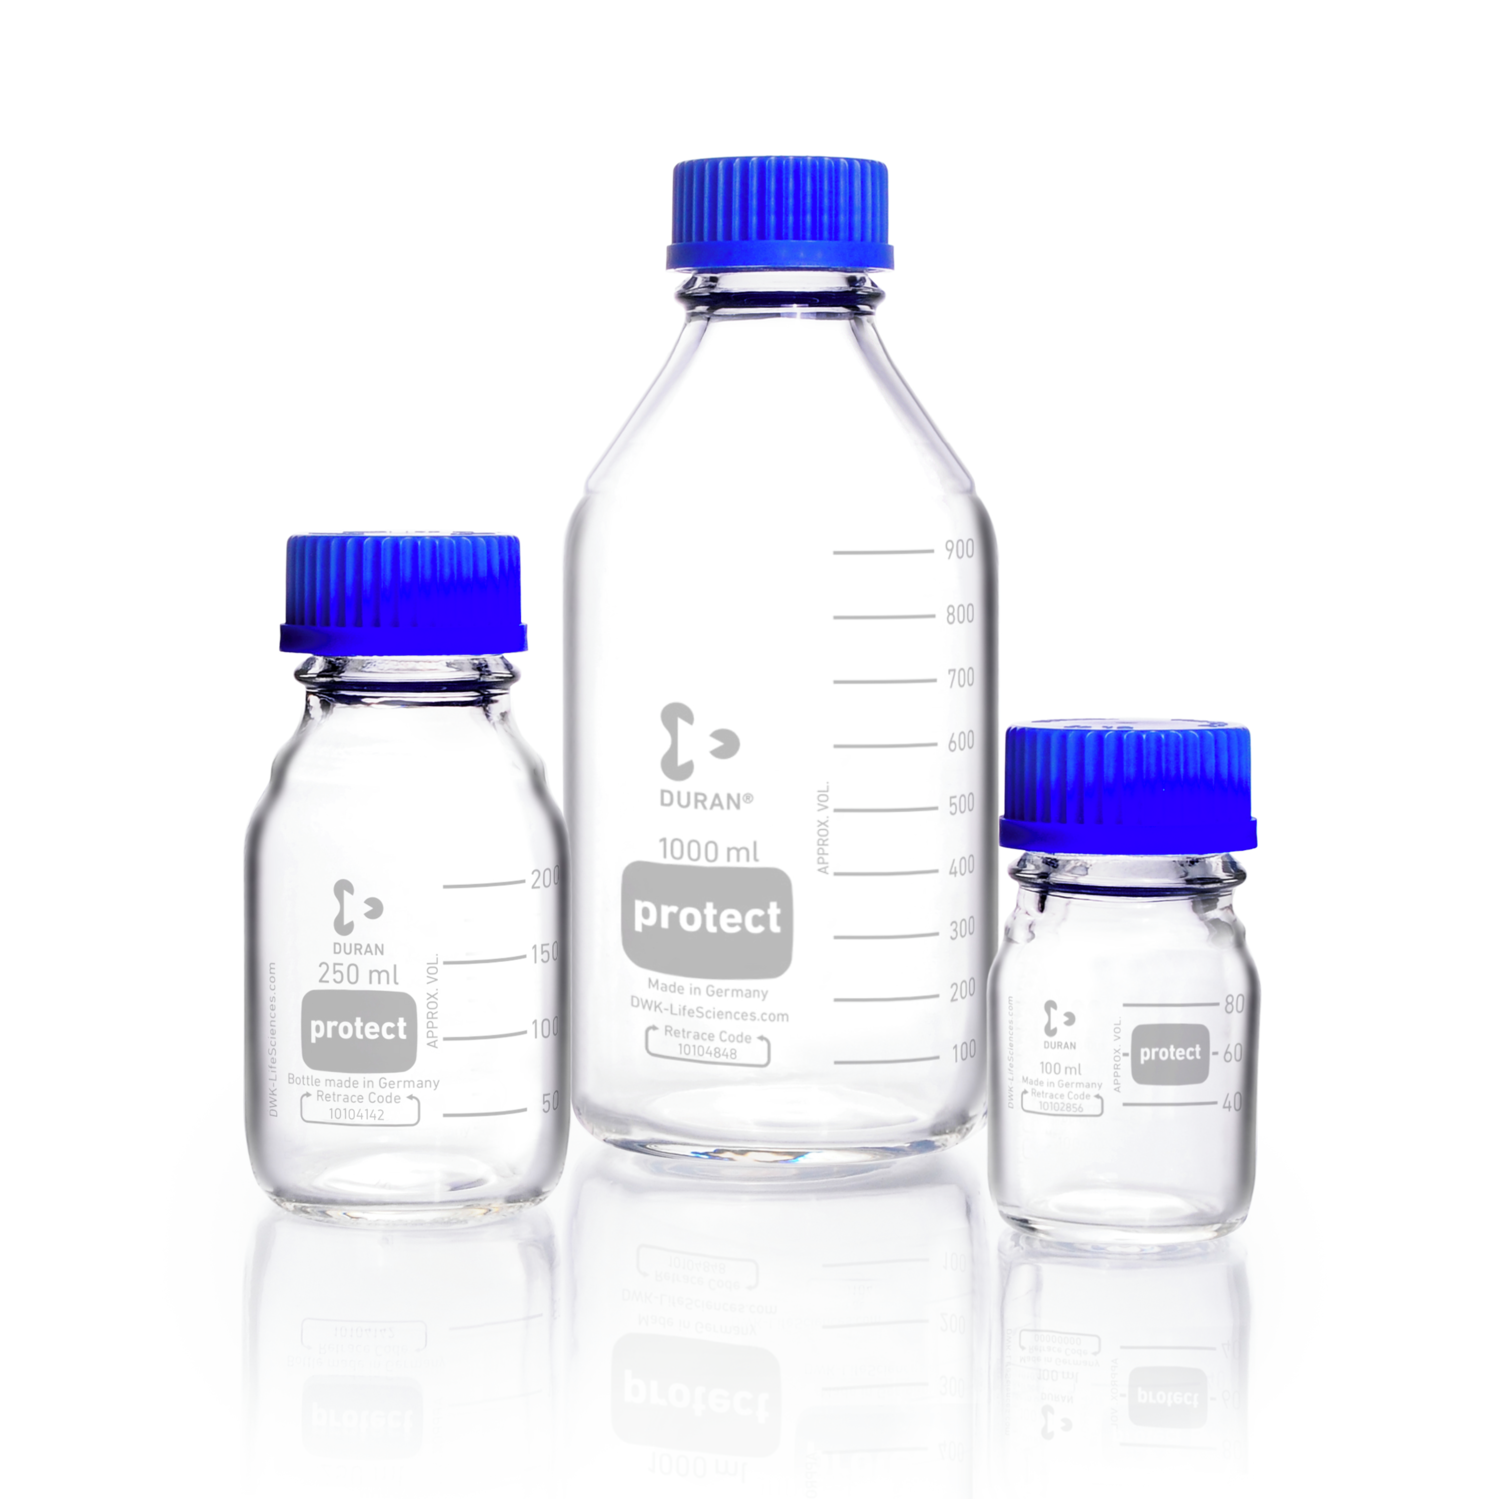 DURAN® protect GL 45 Laboratory Bottle, clear, plastic safety coated, with screw cap and pouring ring, PP, blue, 500 mL